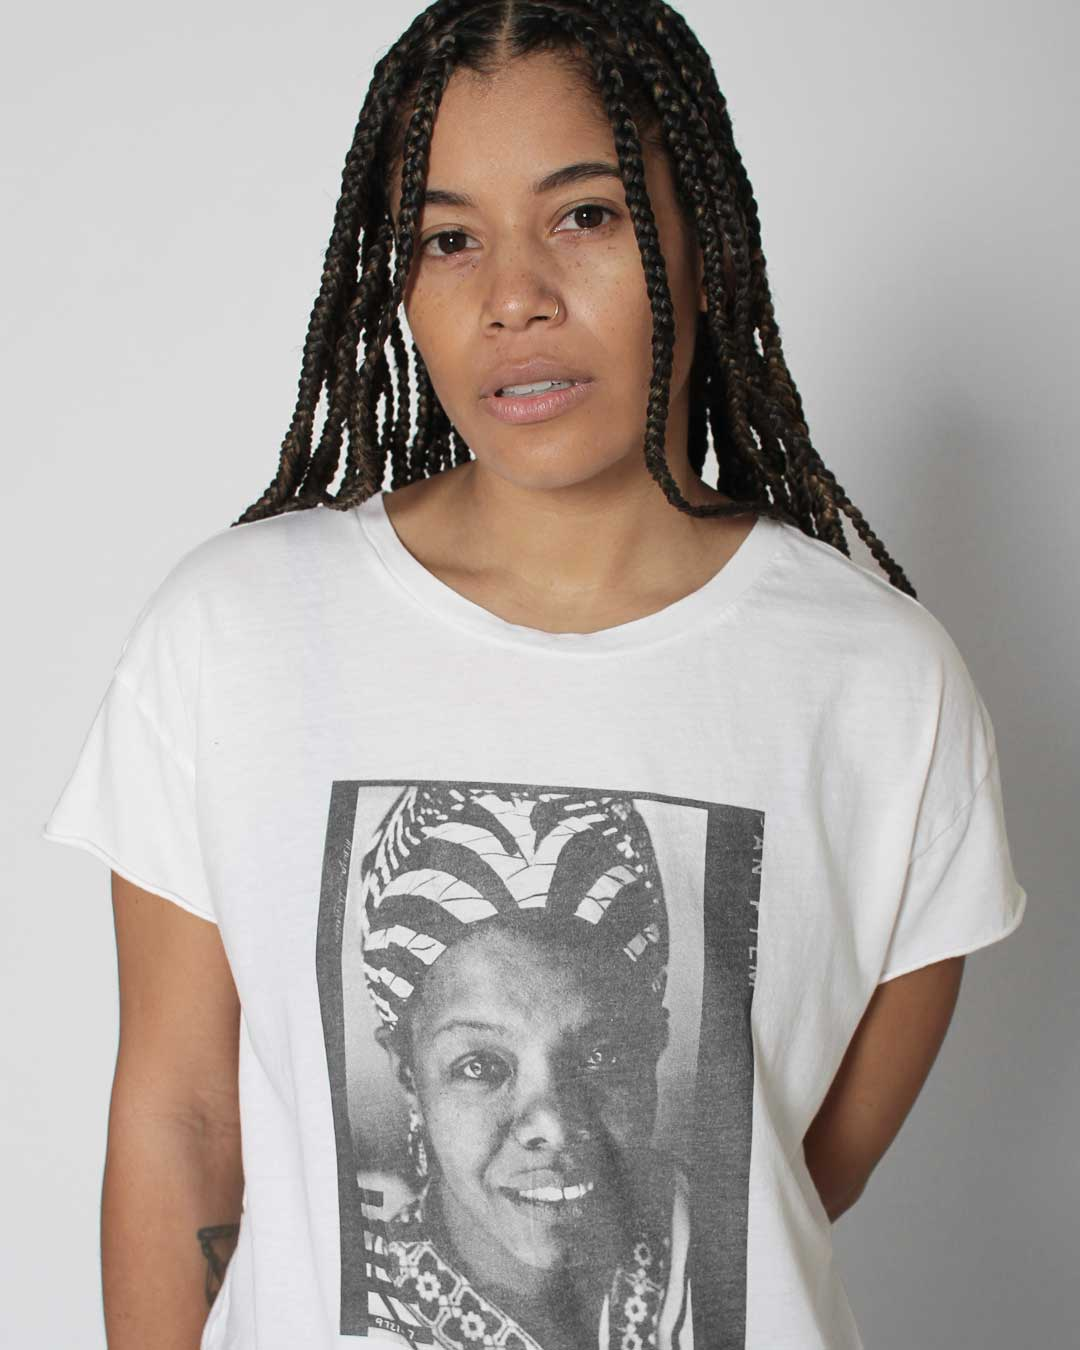 BHT - Maya Angelou Photo Women's Tee - Roots of Inc dba Roots of Fight